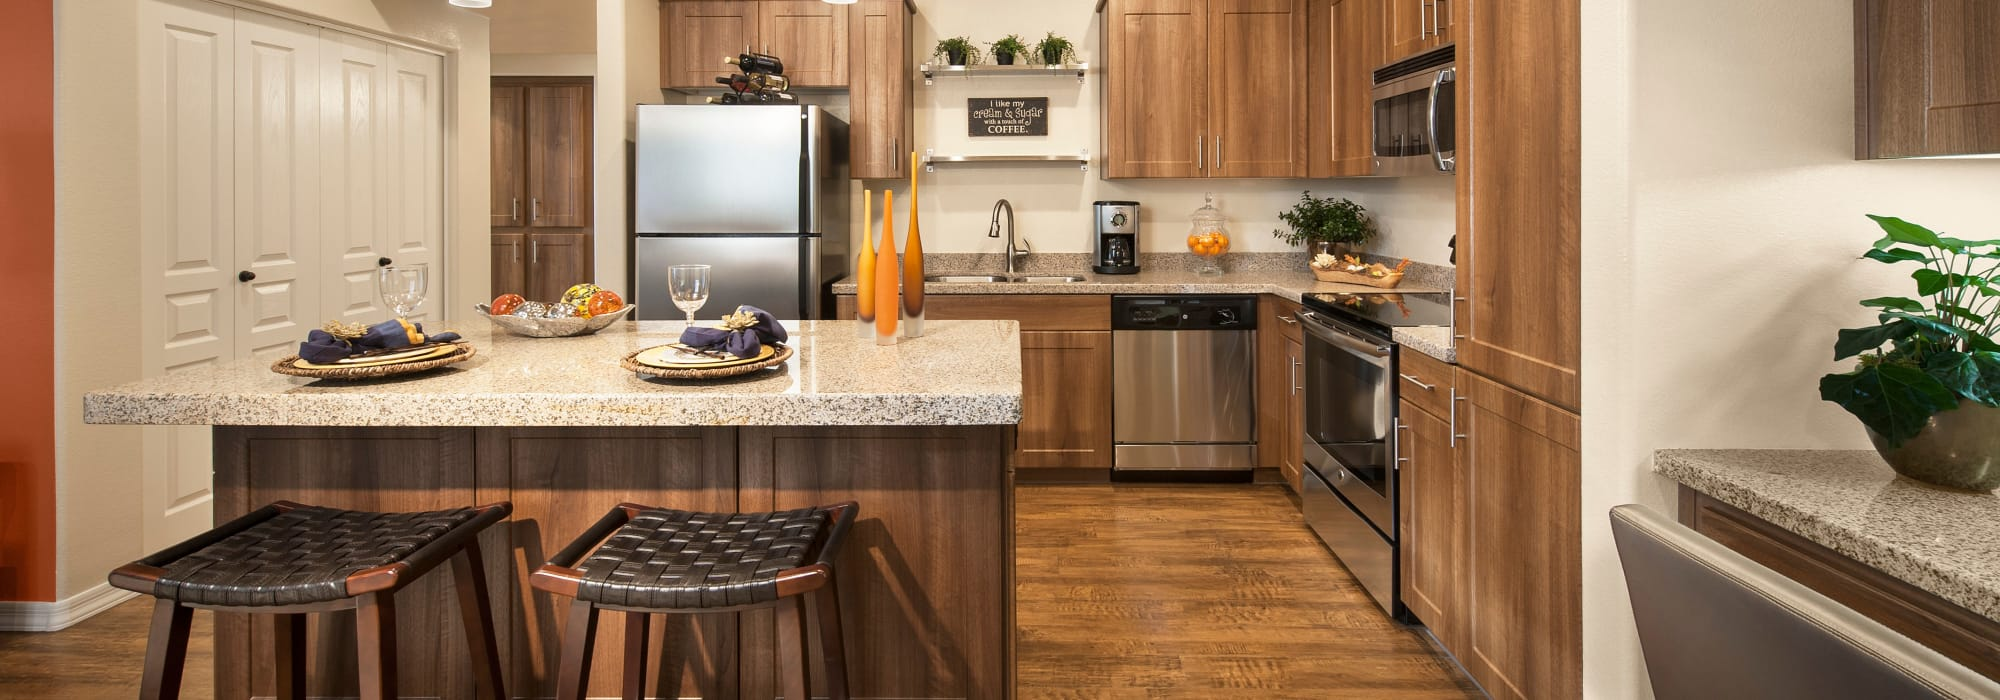 Spacious kitchen to entertain friends and family at San Capella in Tempe, Arizona